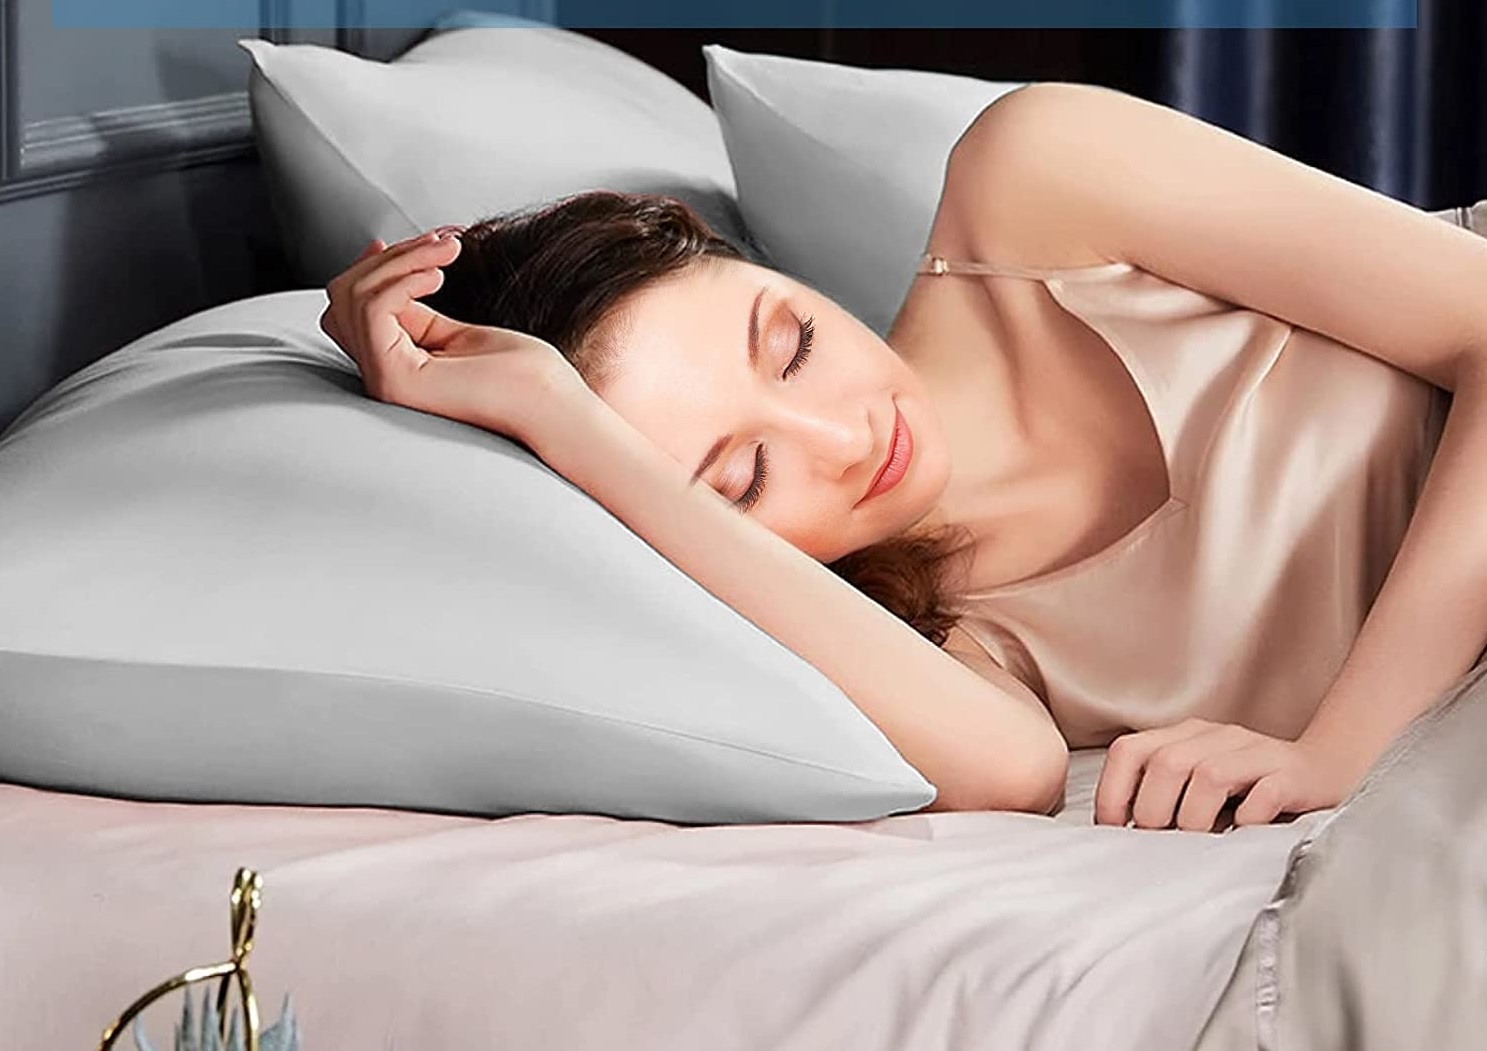 The Avolare Cooling pillowcase